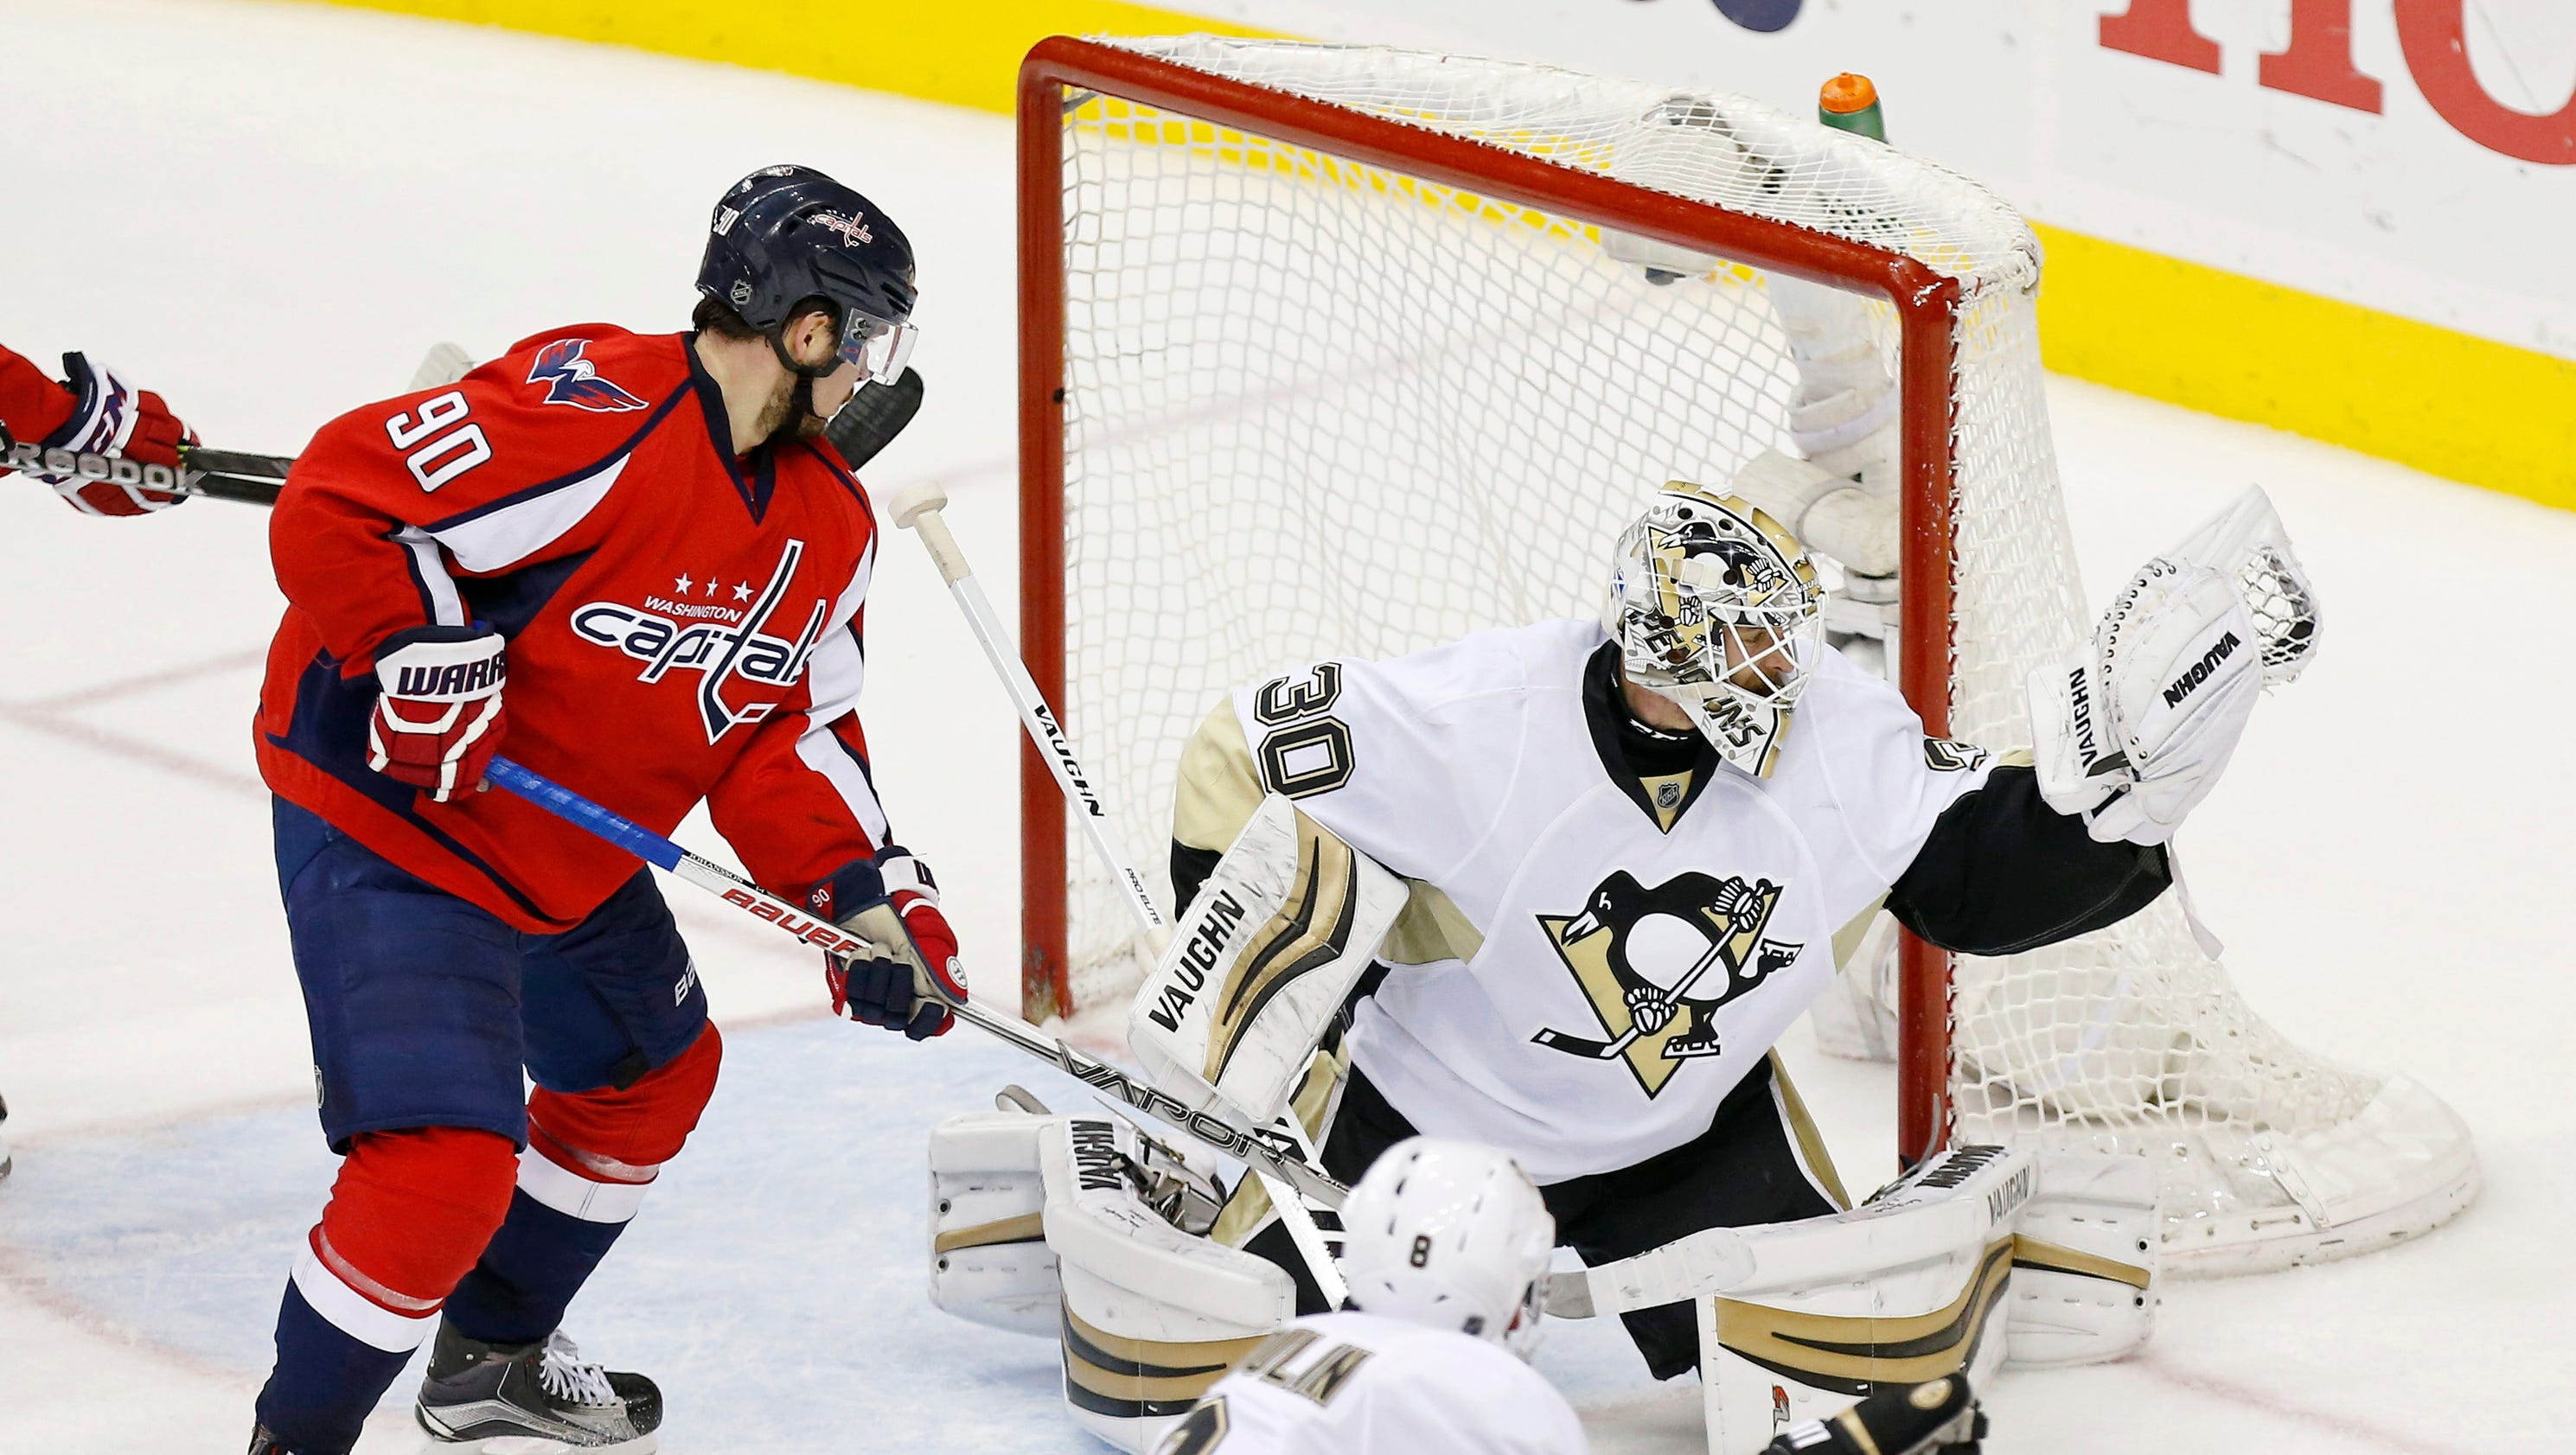 635976631592085268-usp-nhl-stanley-cup-playoffs-pittsburgh-penguins